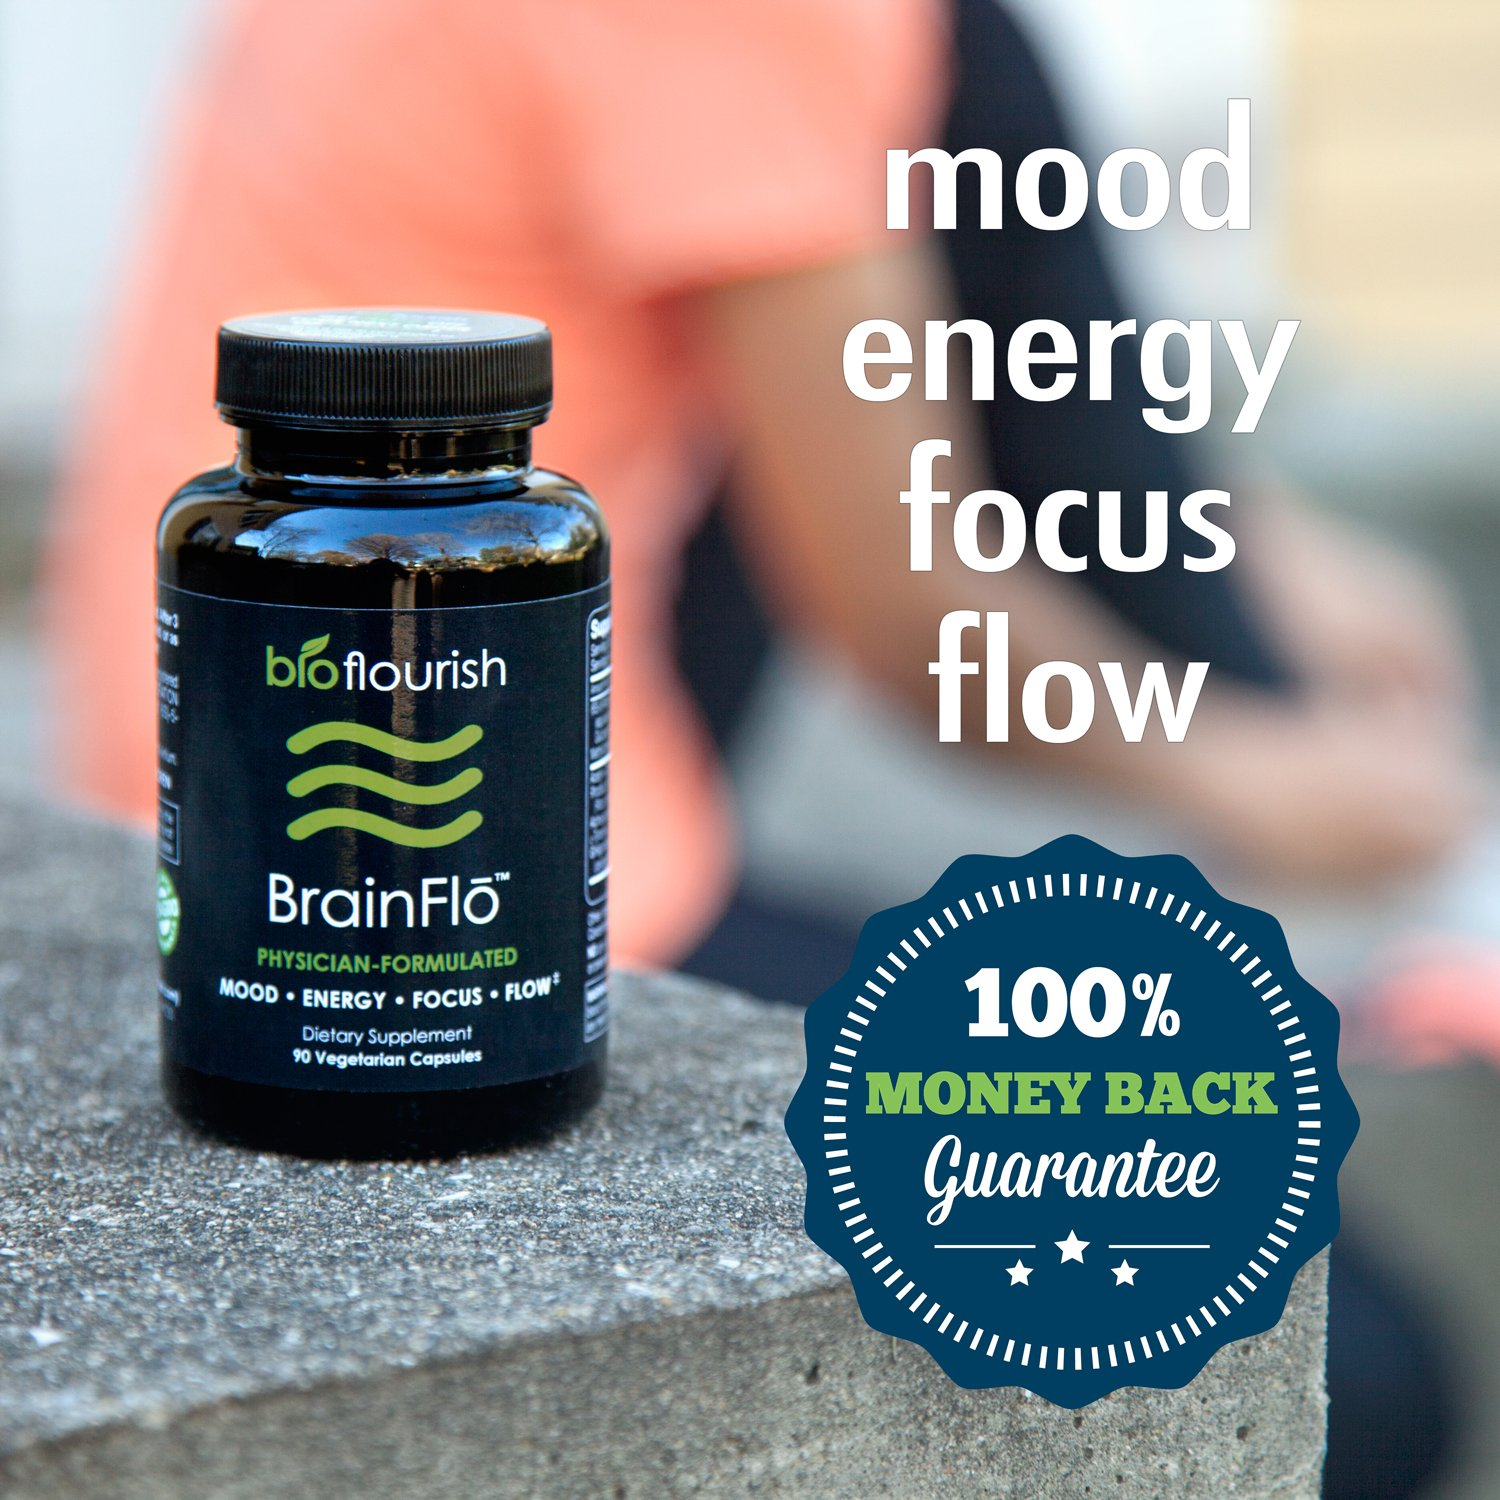 Nootropic Energy and Focus Brain Supplement: Non GMO Natural Cognitive Enhancement Pills for Mood, Memory, Mental Clarity, Concentration & Flow - Daily Brain Boosting Support Supplements (90 ct) by BioFlourish (Image #4)